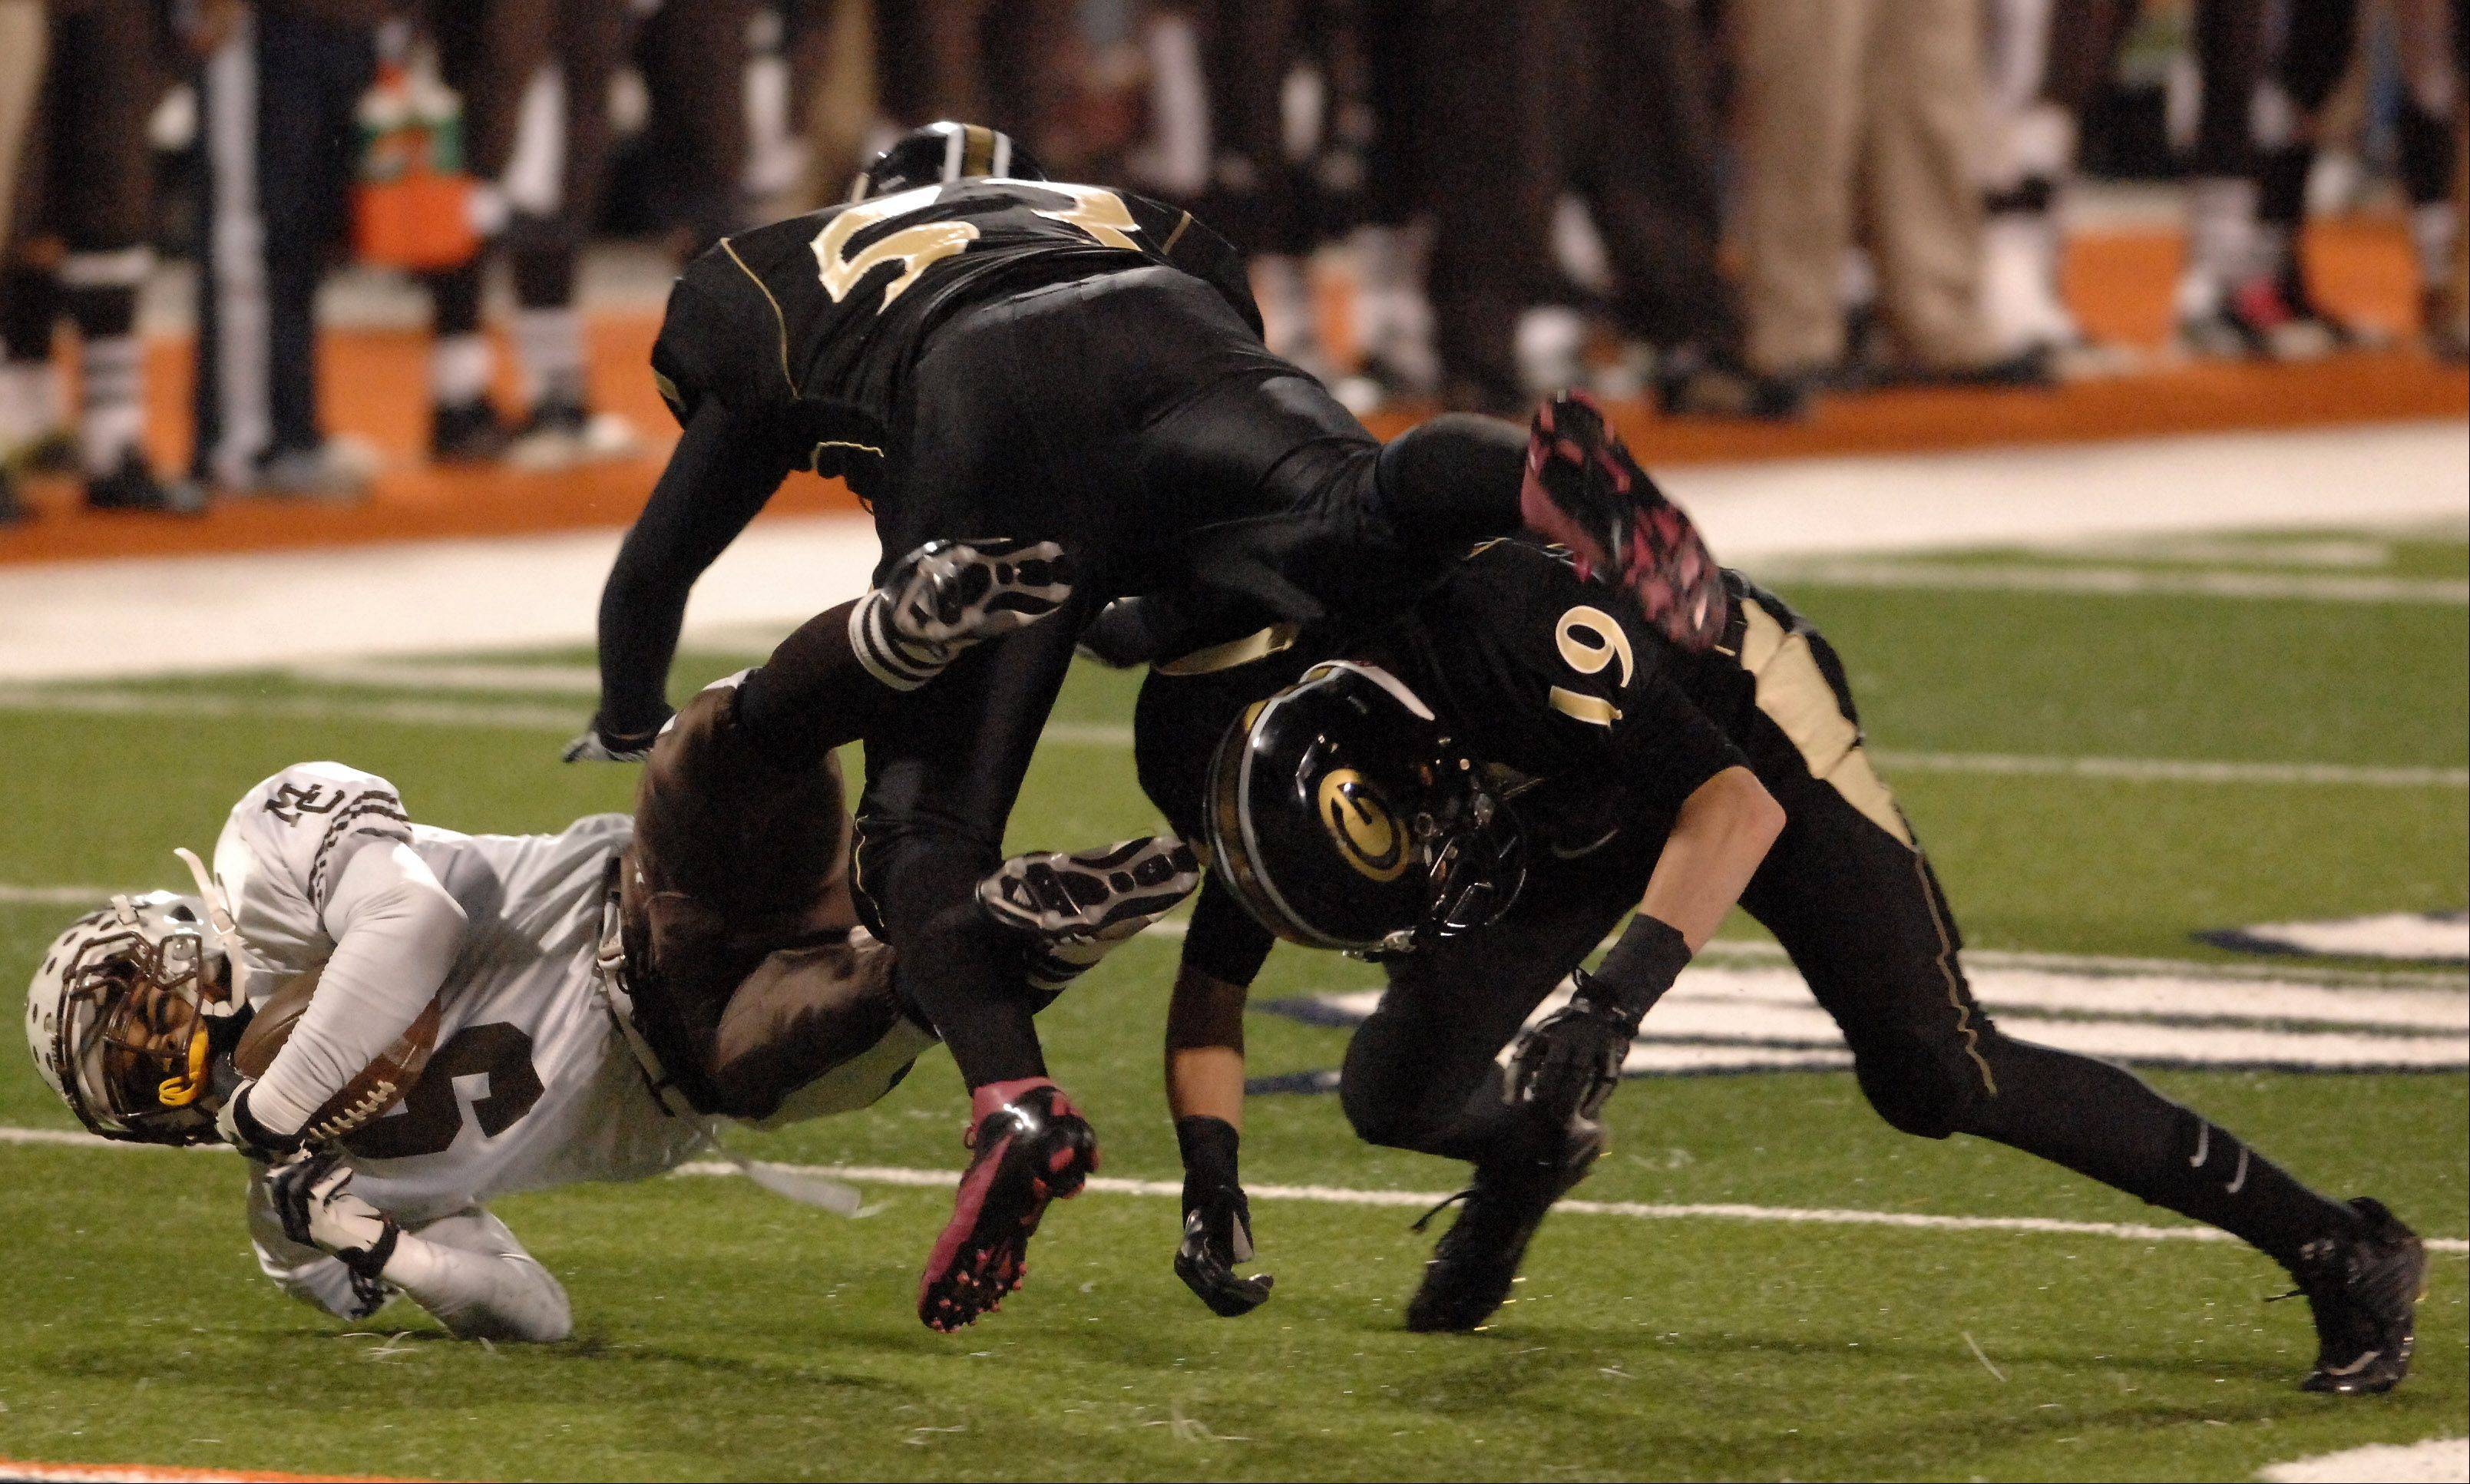 Glenbard North's Joe Fierro, 53, puts a big hit on Mt. Carmel's Ivan Strmic during Saturday's Class 8A state title game at Memorial Stadium in Champaign.